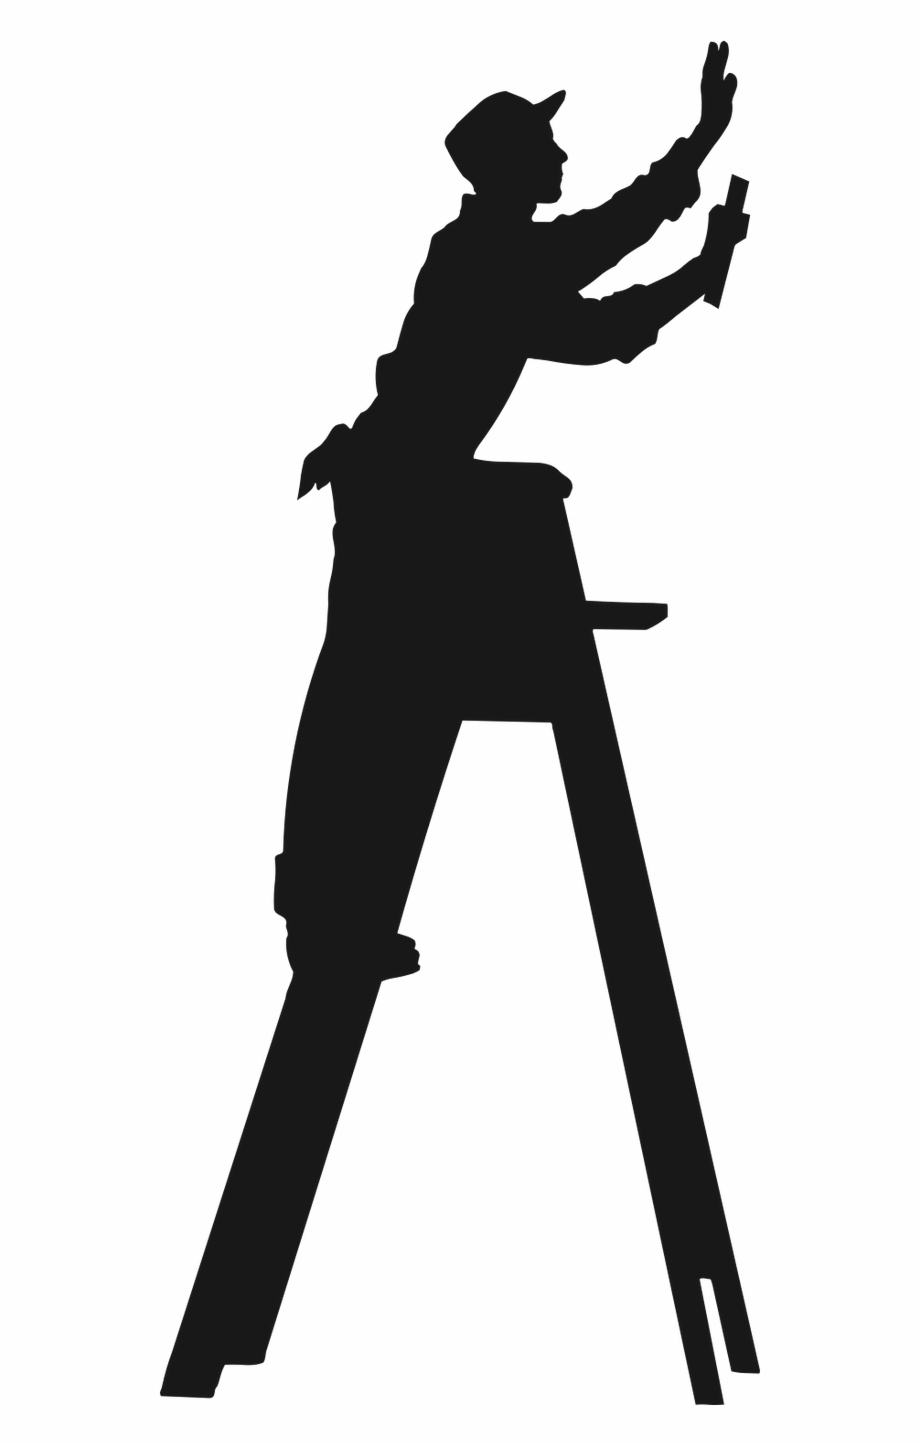 Free Handyman Clipart Black And White, Download Free Clip.